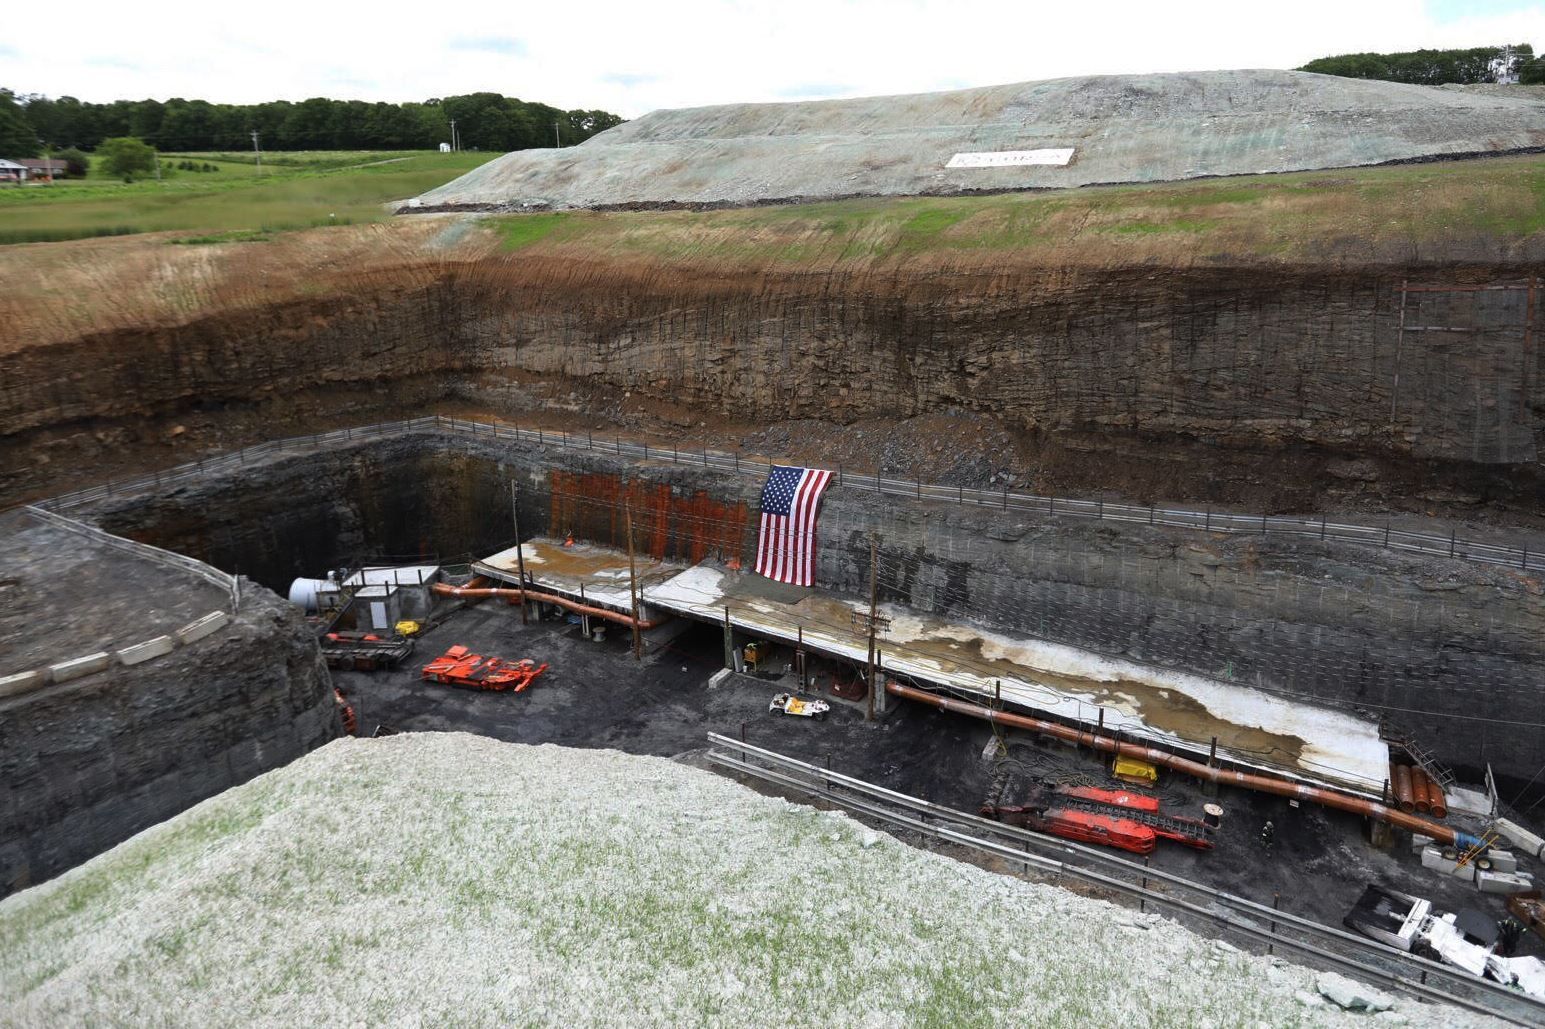 somerset-coal-rush The Acosta Mine in Somerset County is expected bring 70 to 100 jobs to Western Pennsylvania, along with an estimated 500 indirect jobs. Corsa Coal Corp. is marking the occasion on Thursday with grand opening ceremony.